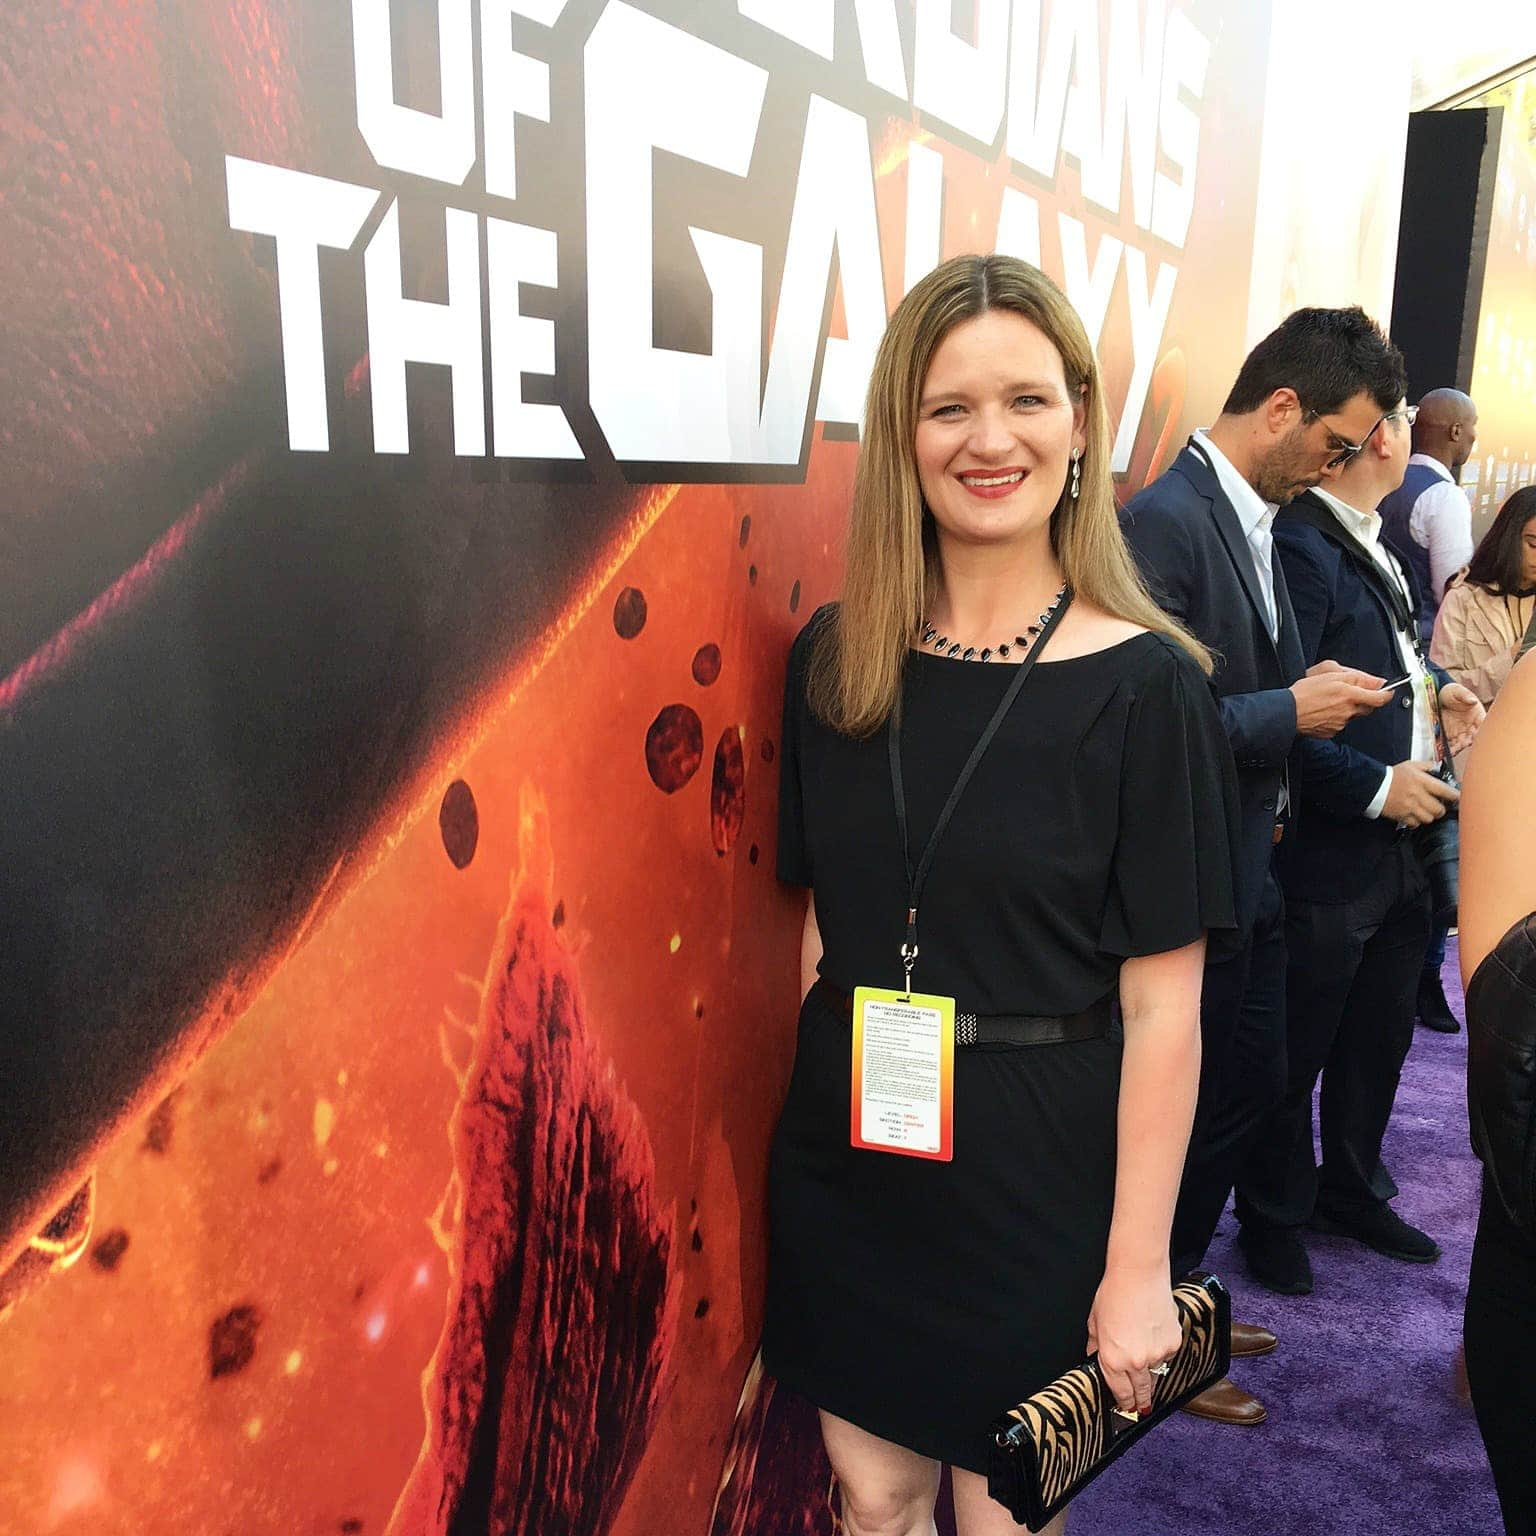 Guardians of the Galaxy World premiere